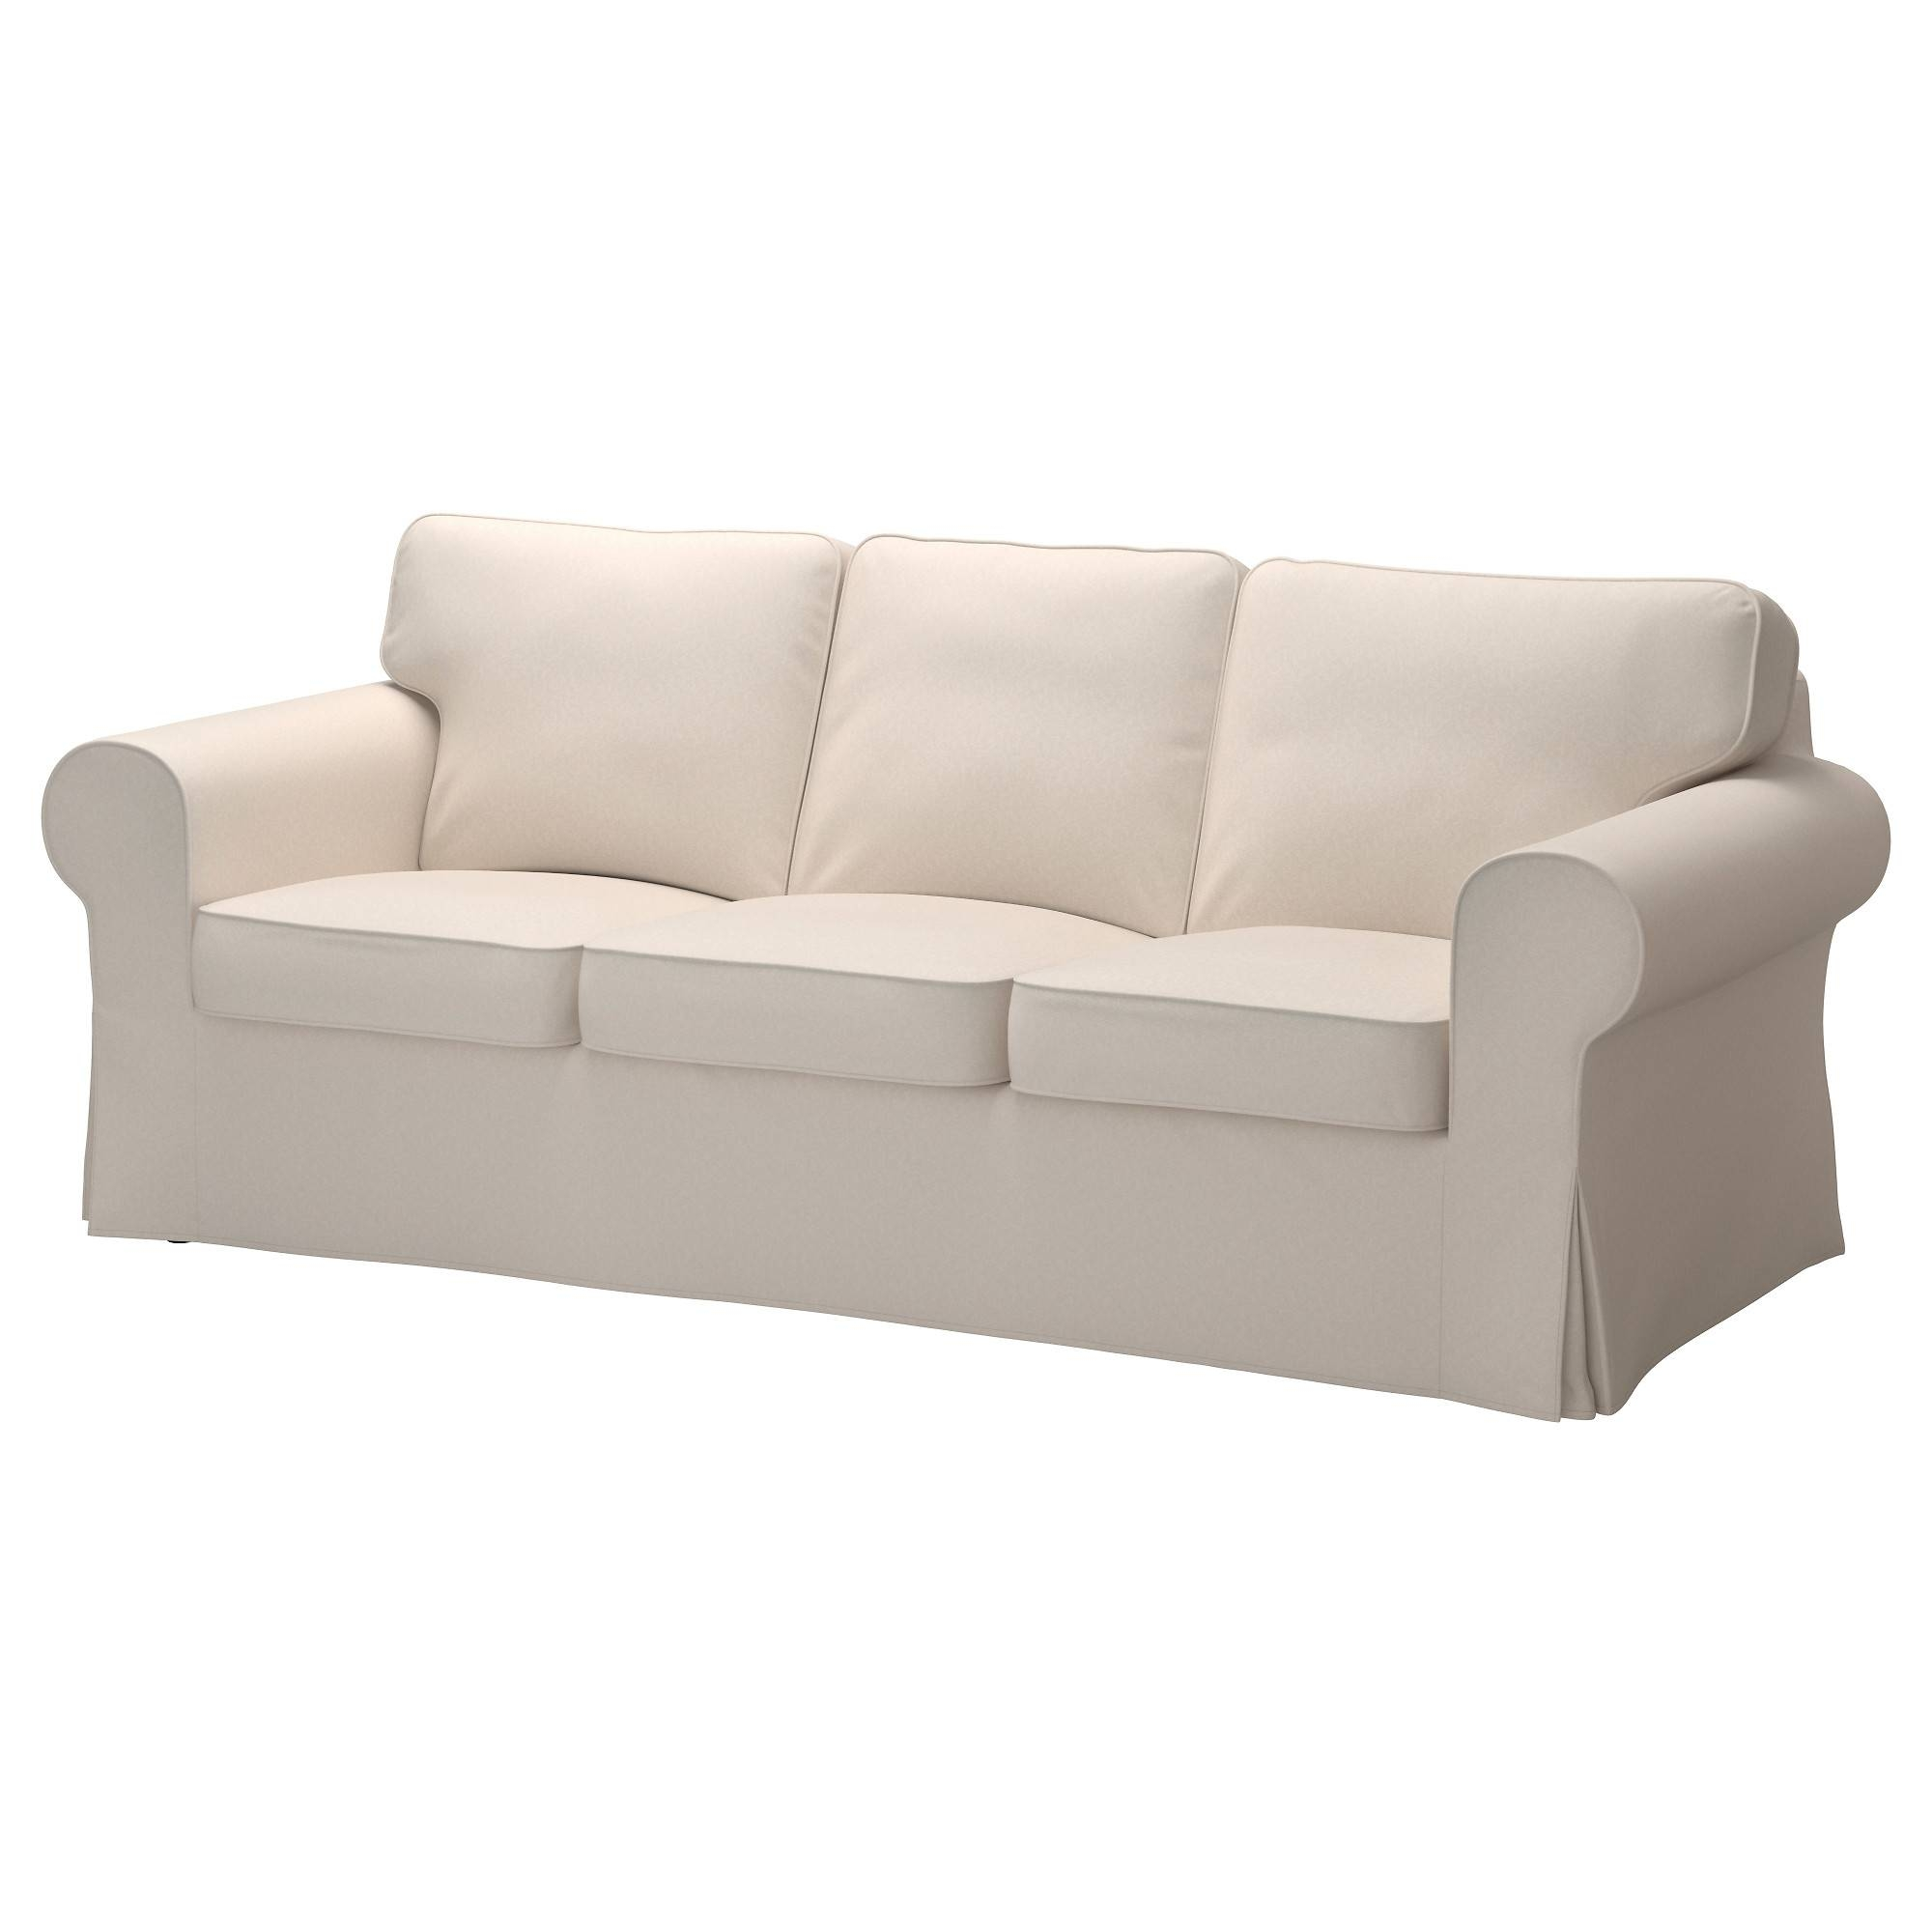 Ektorp Sofa - Lofallet Beige - Ikea within Sofas (Image 3 of 15)